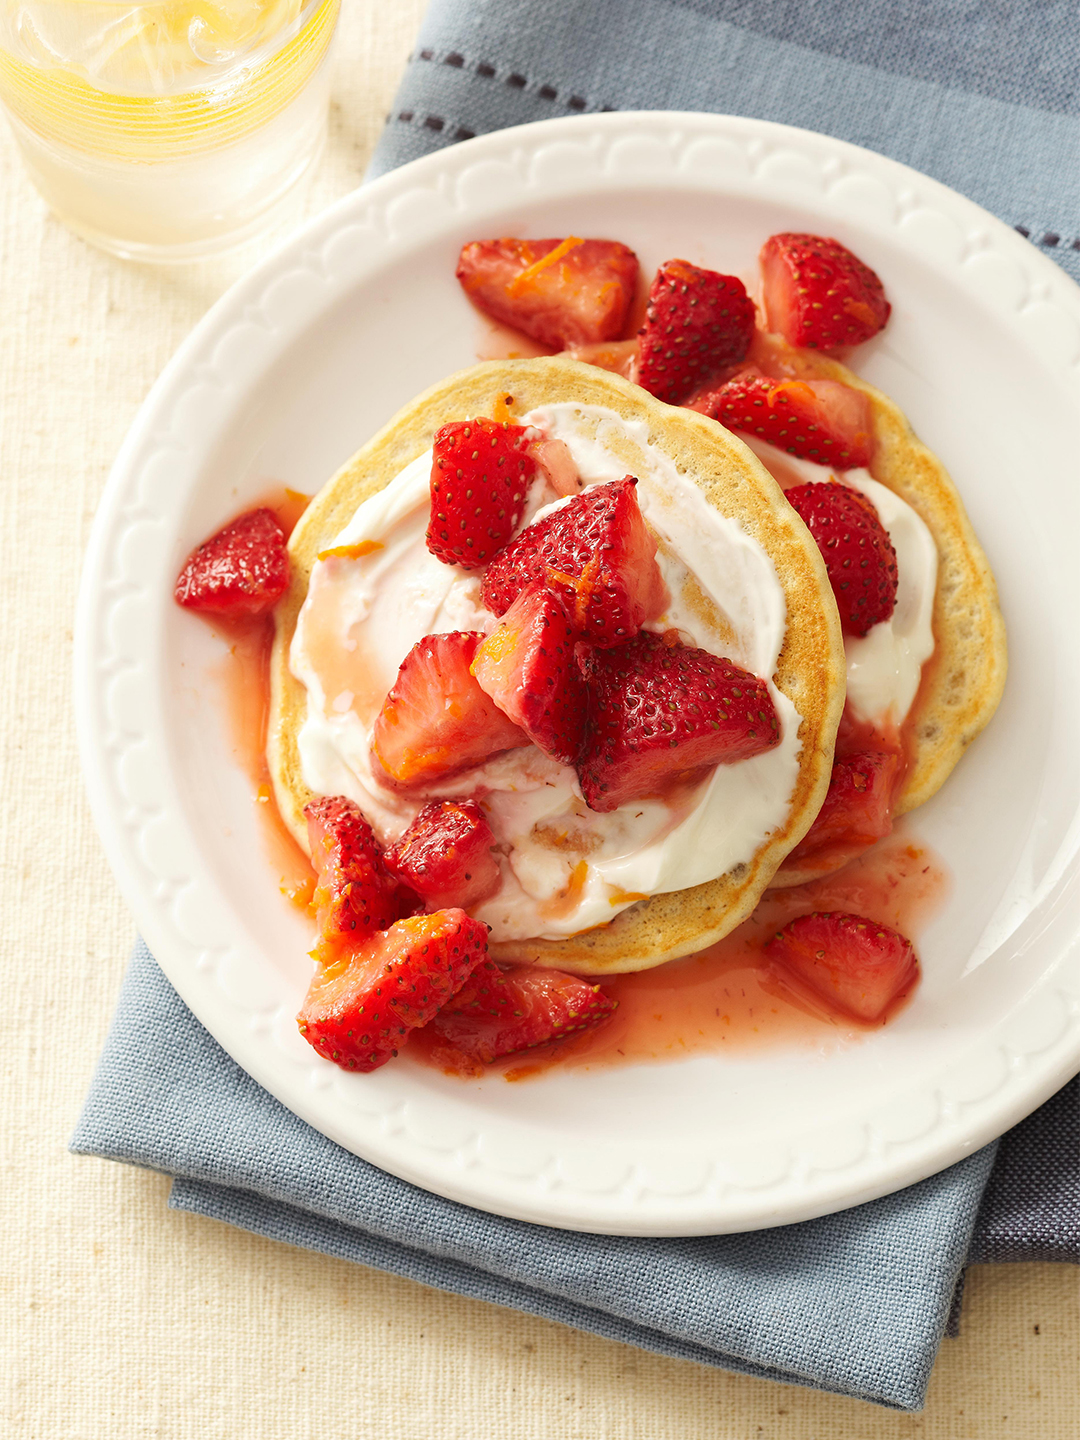 Strawberries and Cream Pancakes on white plate with blue napkin